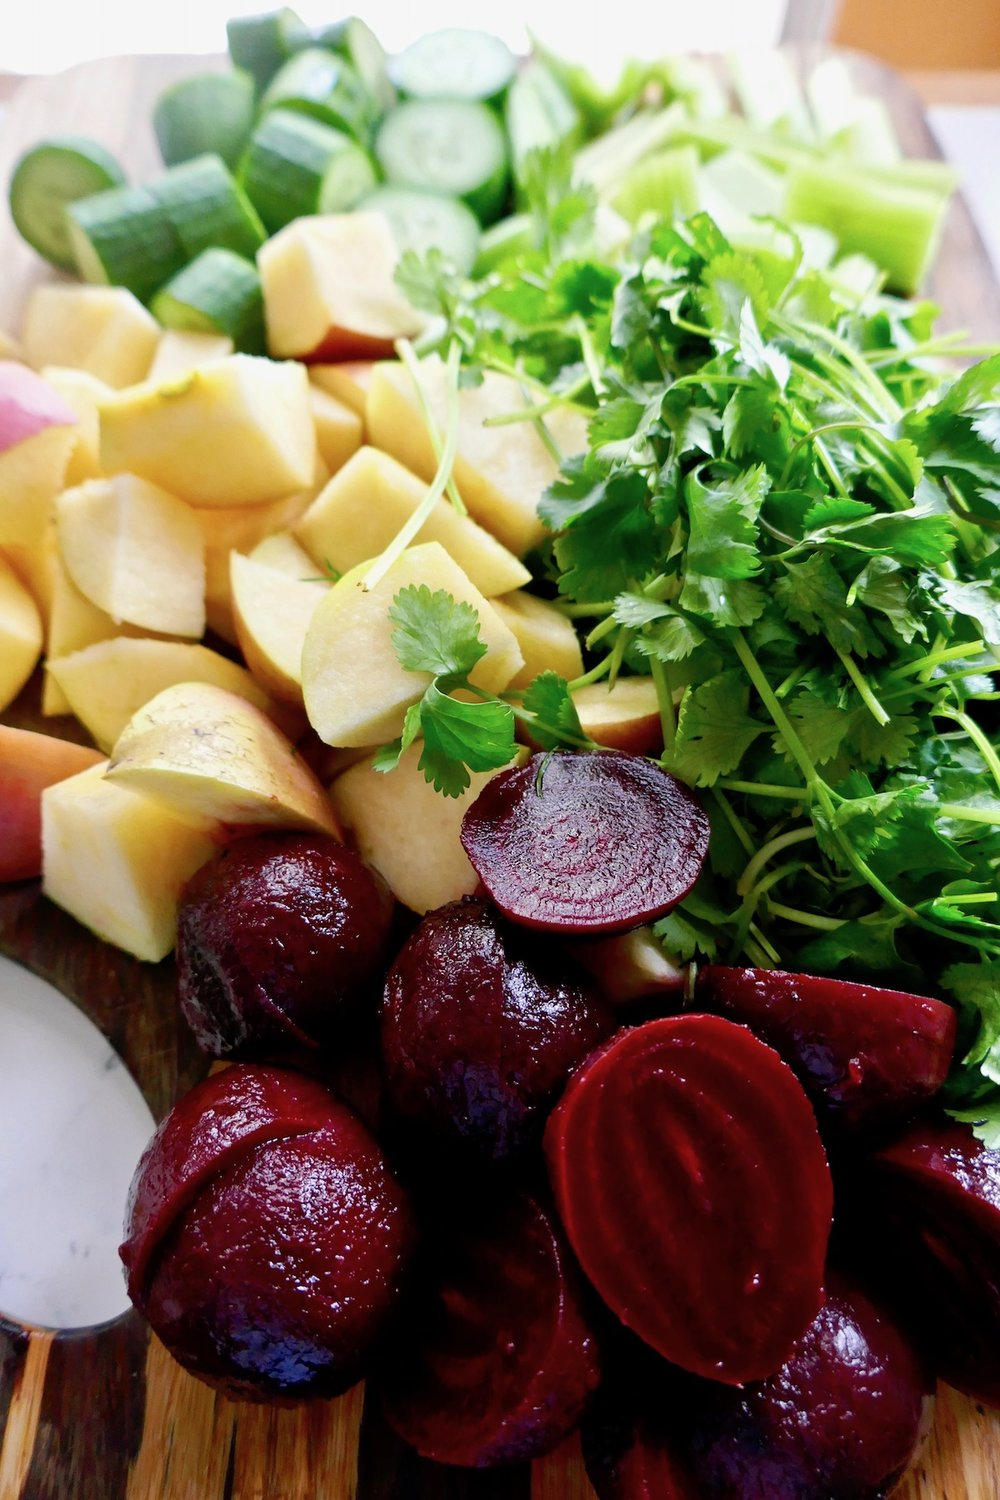 liver cleansing beet juice ingredients - apples, cucumbers, celery, cilantro and beets